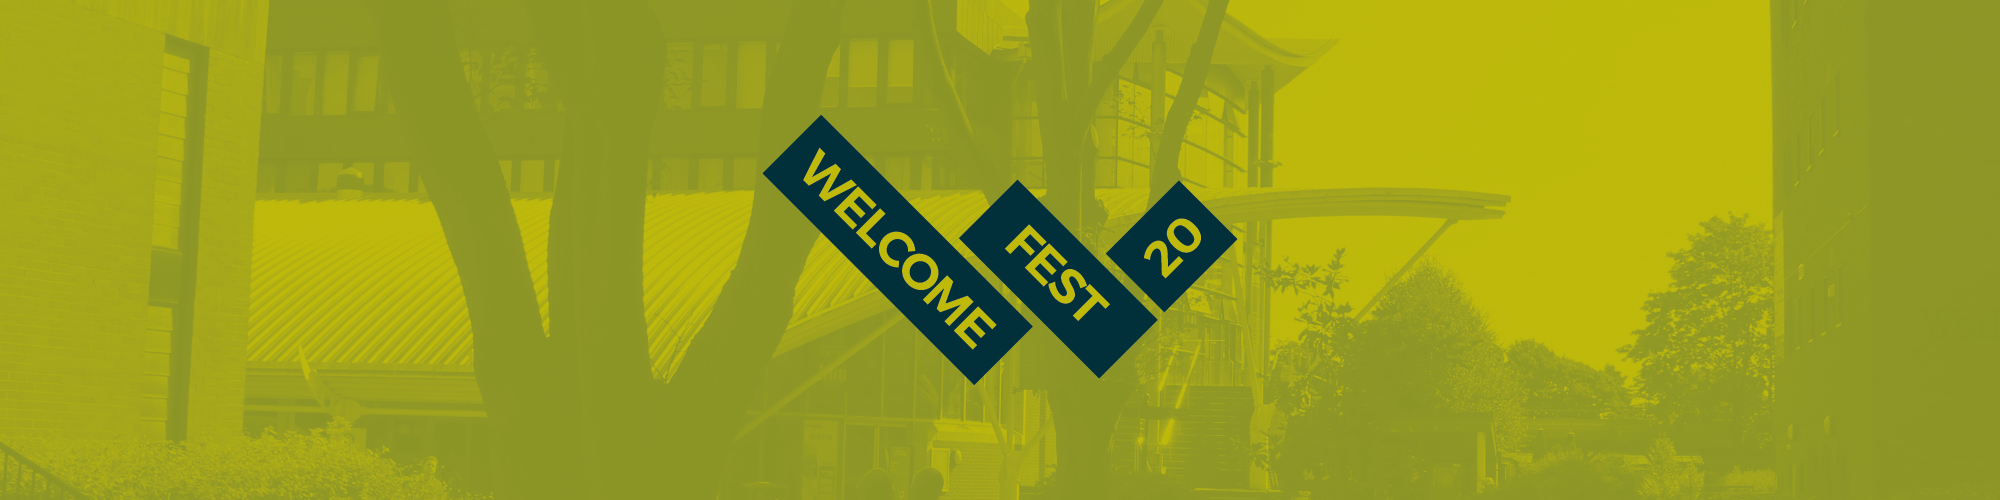 WelcomeFest Banner